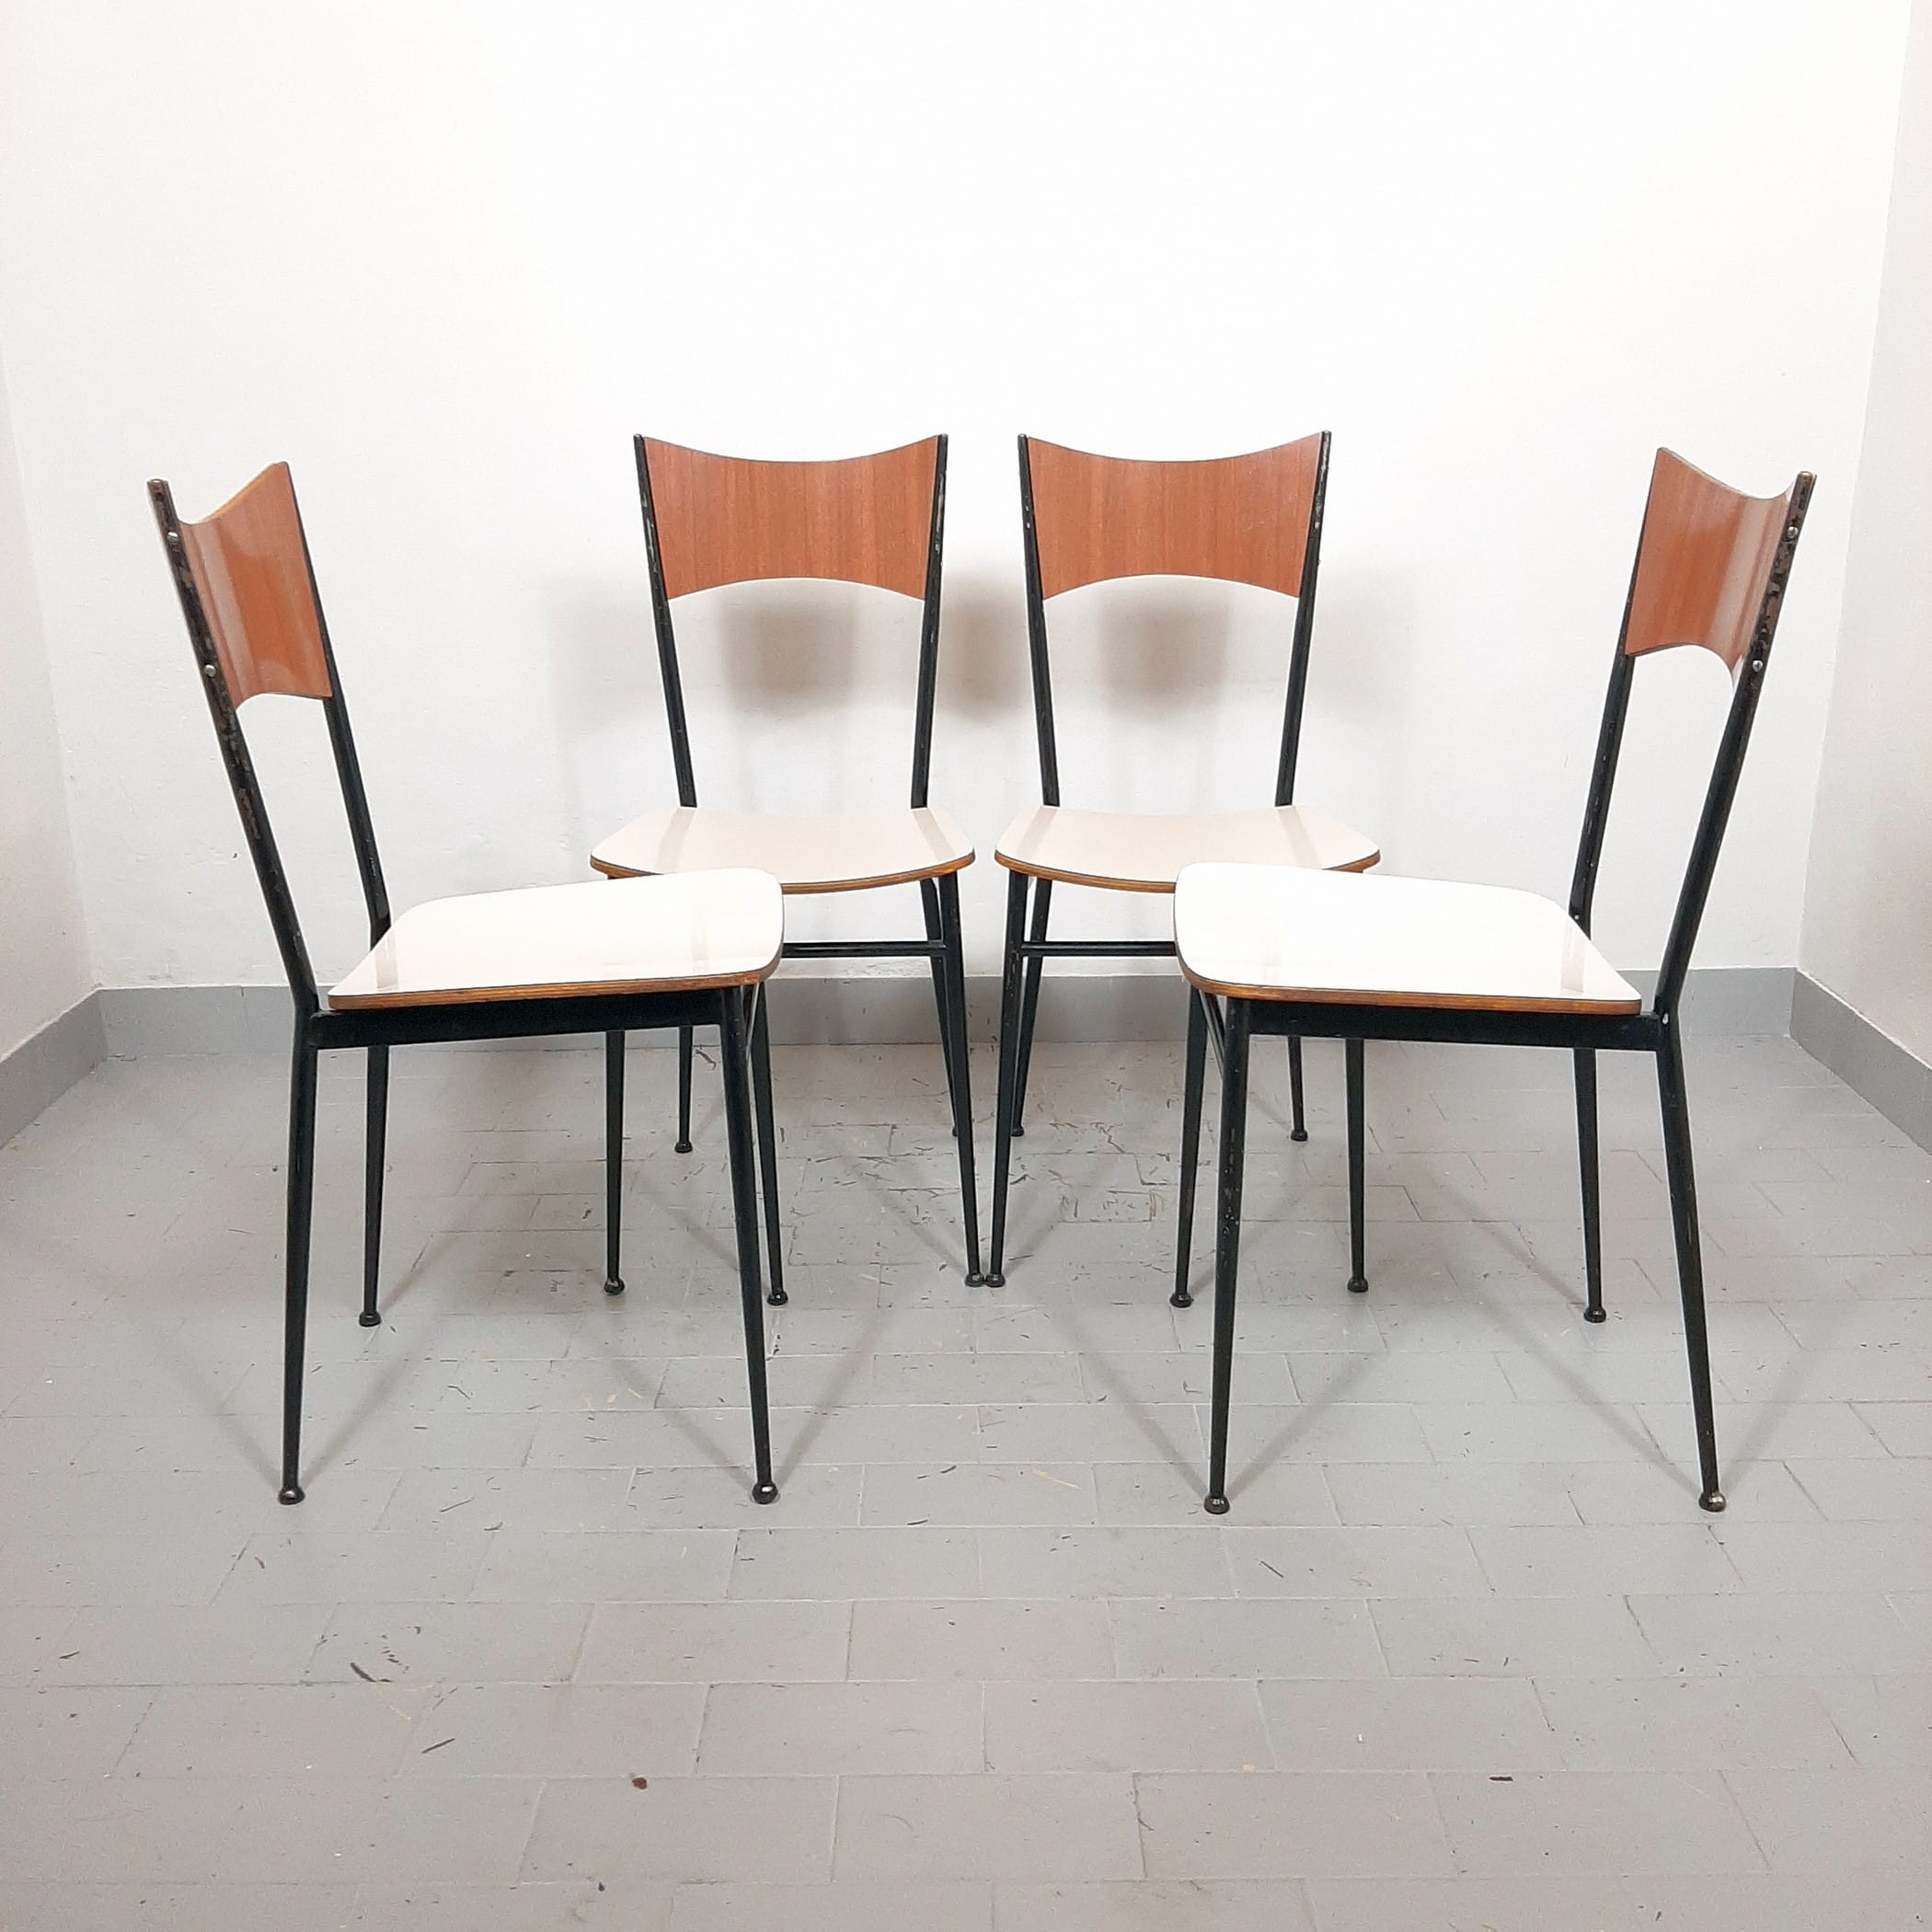 Set of dining chairs Italy '60s Mid-century living room modern